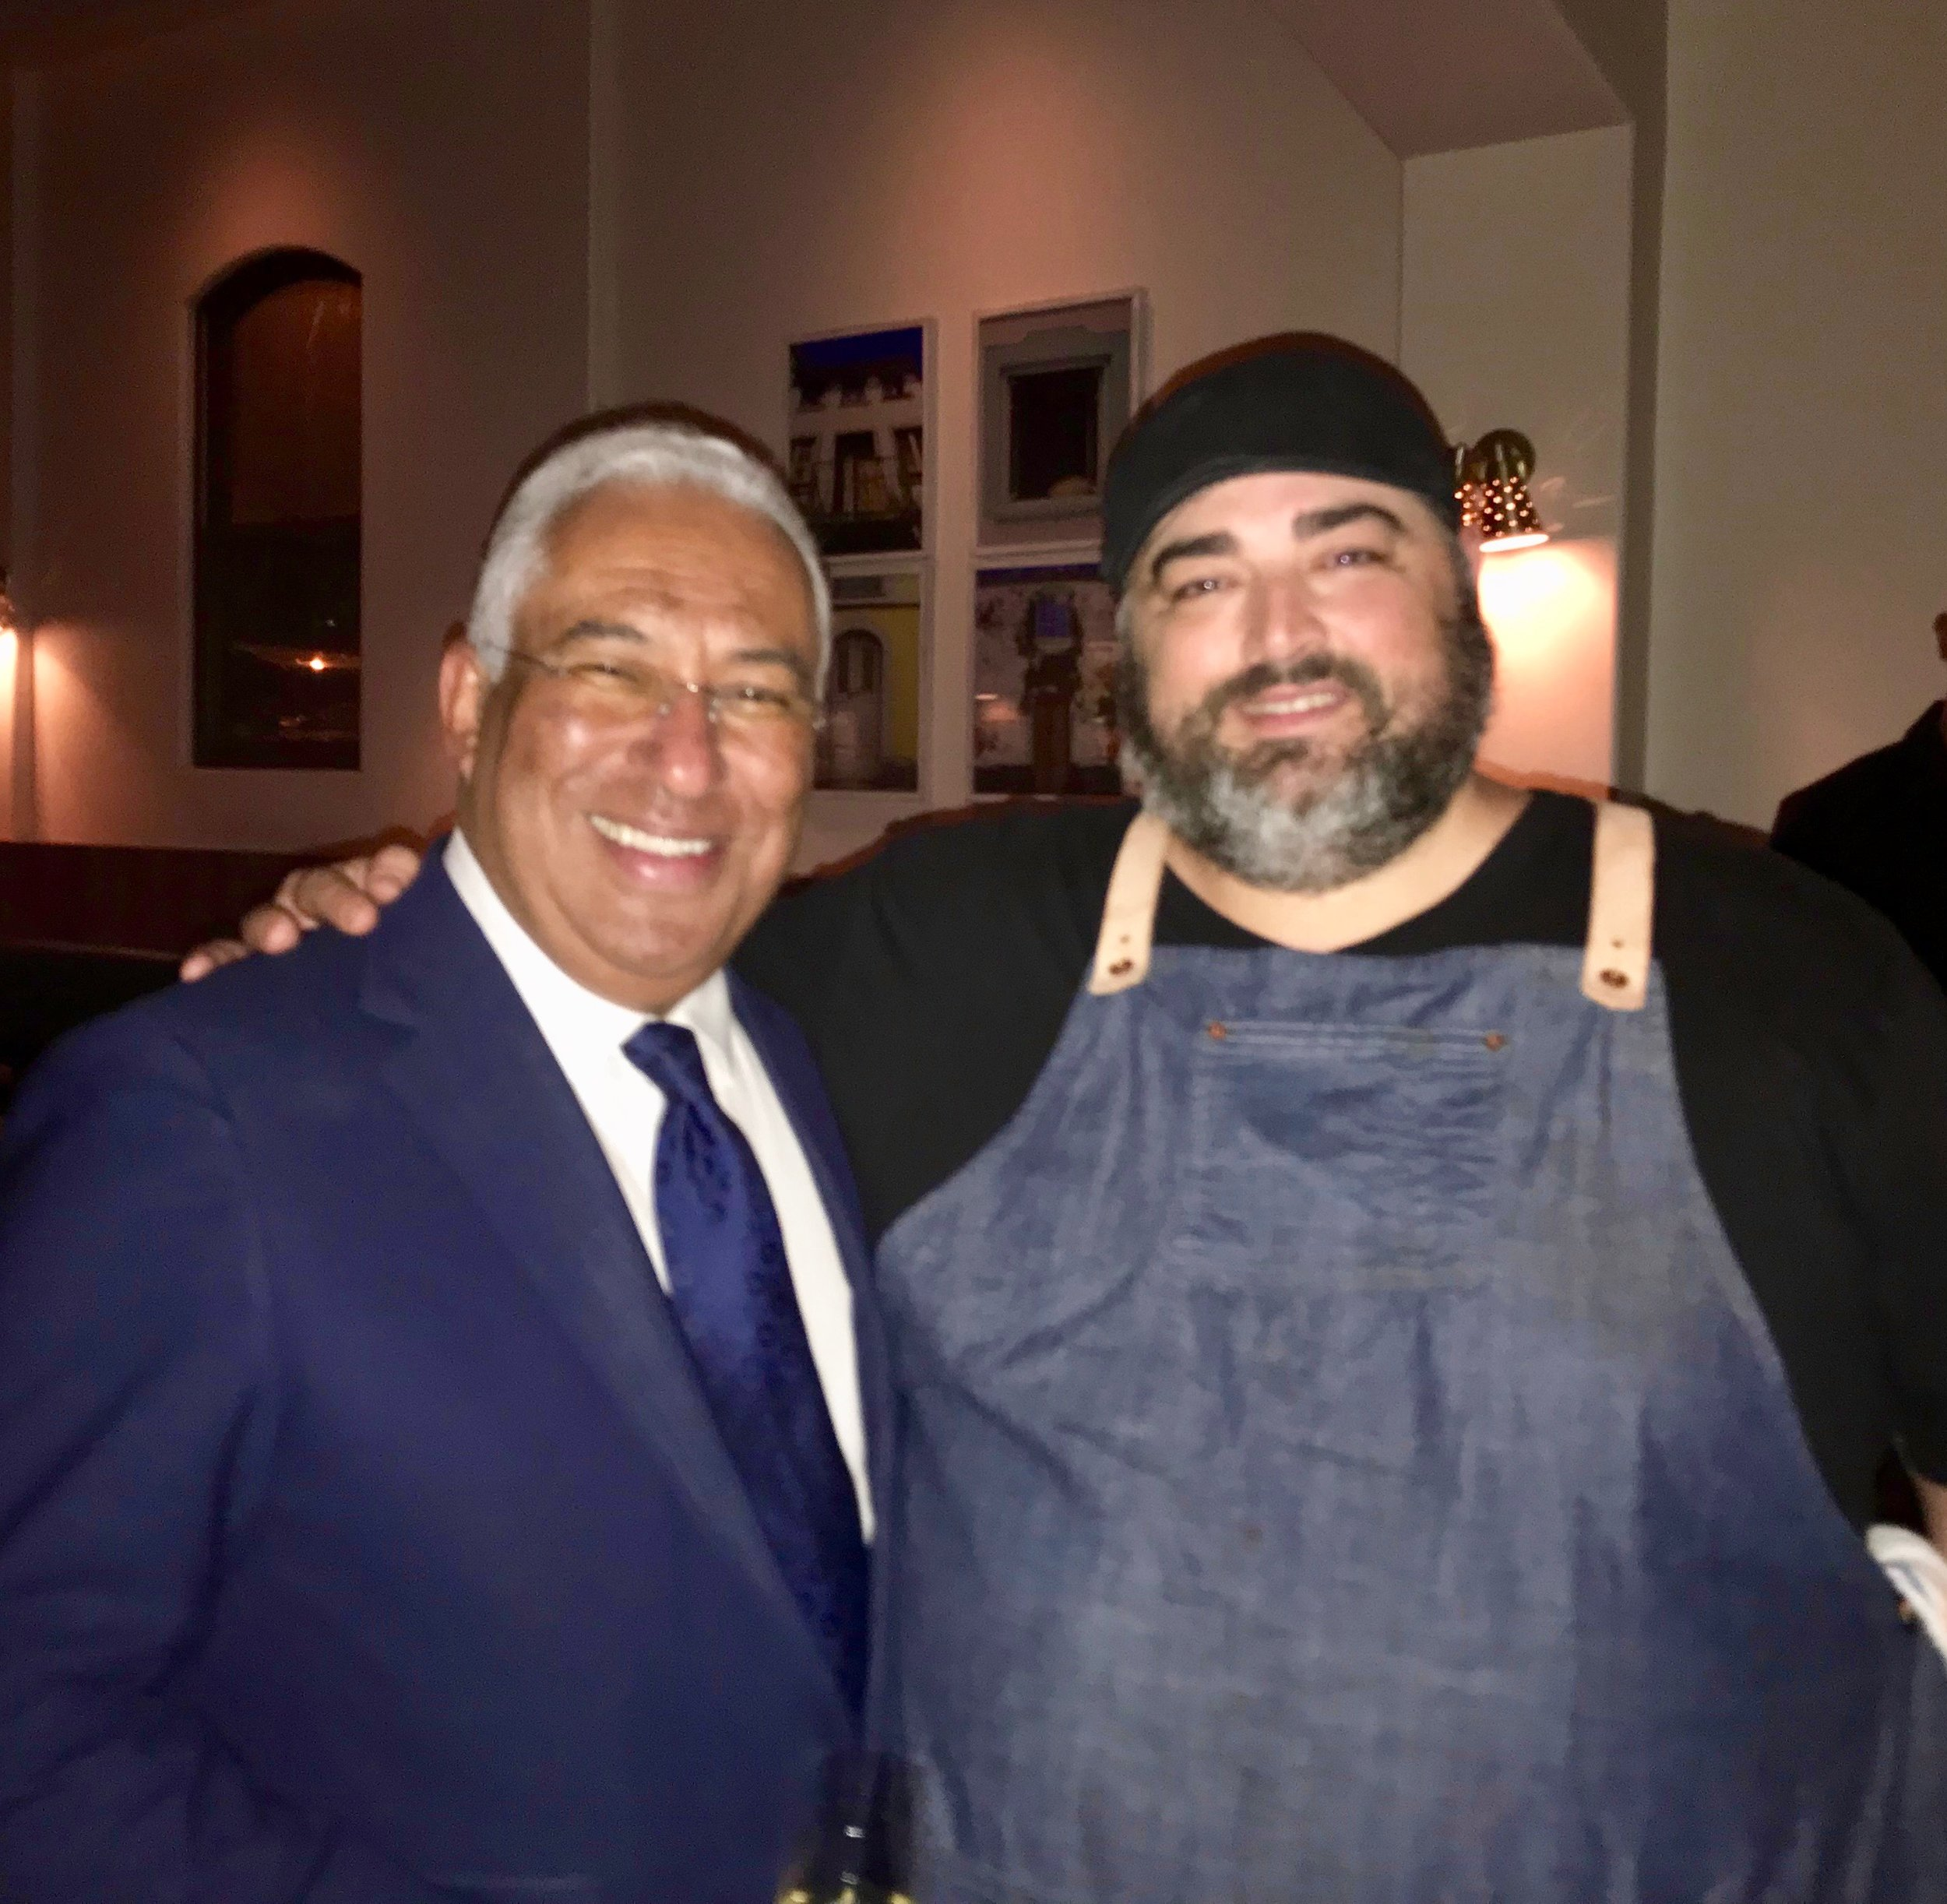 Uma Casa HostsPrime Minister Antonio Costa of Portugal - It was with great pride that Chef Antelmo Faria and the Uma Casa team welcomed Portuguese Prime Minister Antonio Costa and his delegation on June 12, 2018 during their trip to San Francisco. The guests were treated to a specially created menu and unique Portuguese wines for his visit. We are humbled and gracious for the opportunity to have had him enjoy our food and one-of-a-kind hospitality.